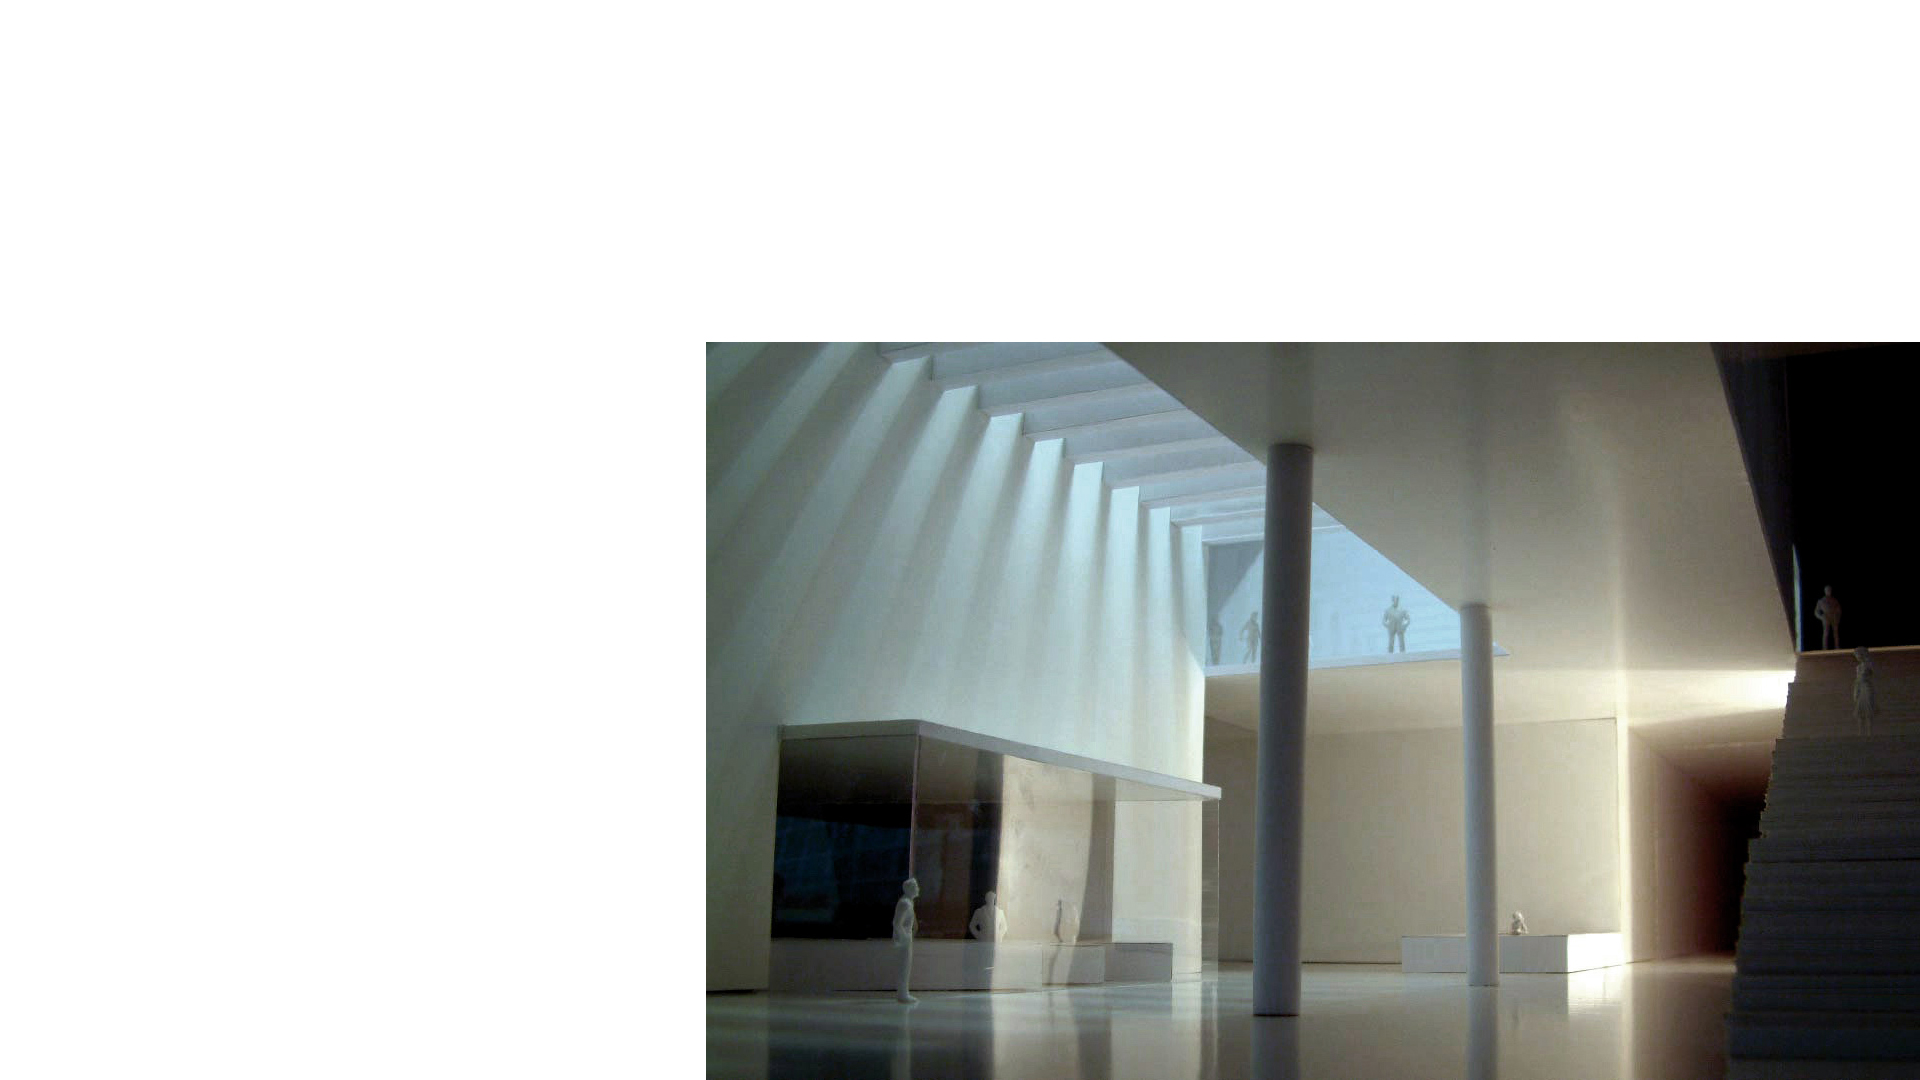 Study model of the toplit main entrance hall and reception at the proposed Moesgård Museum